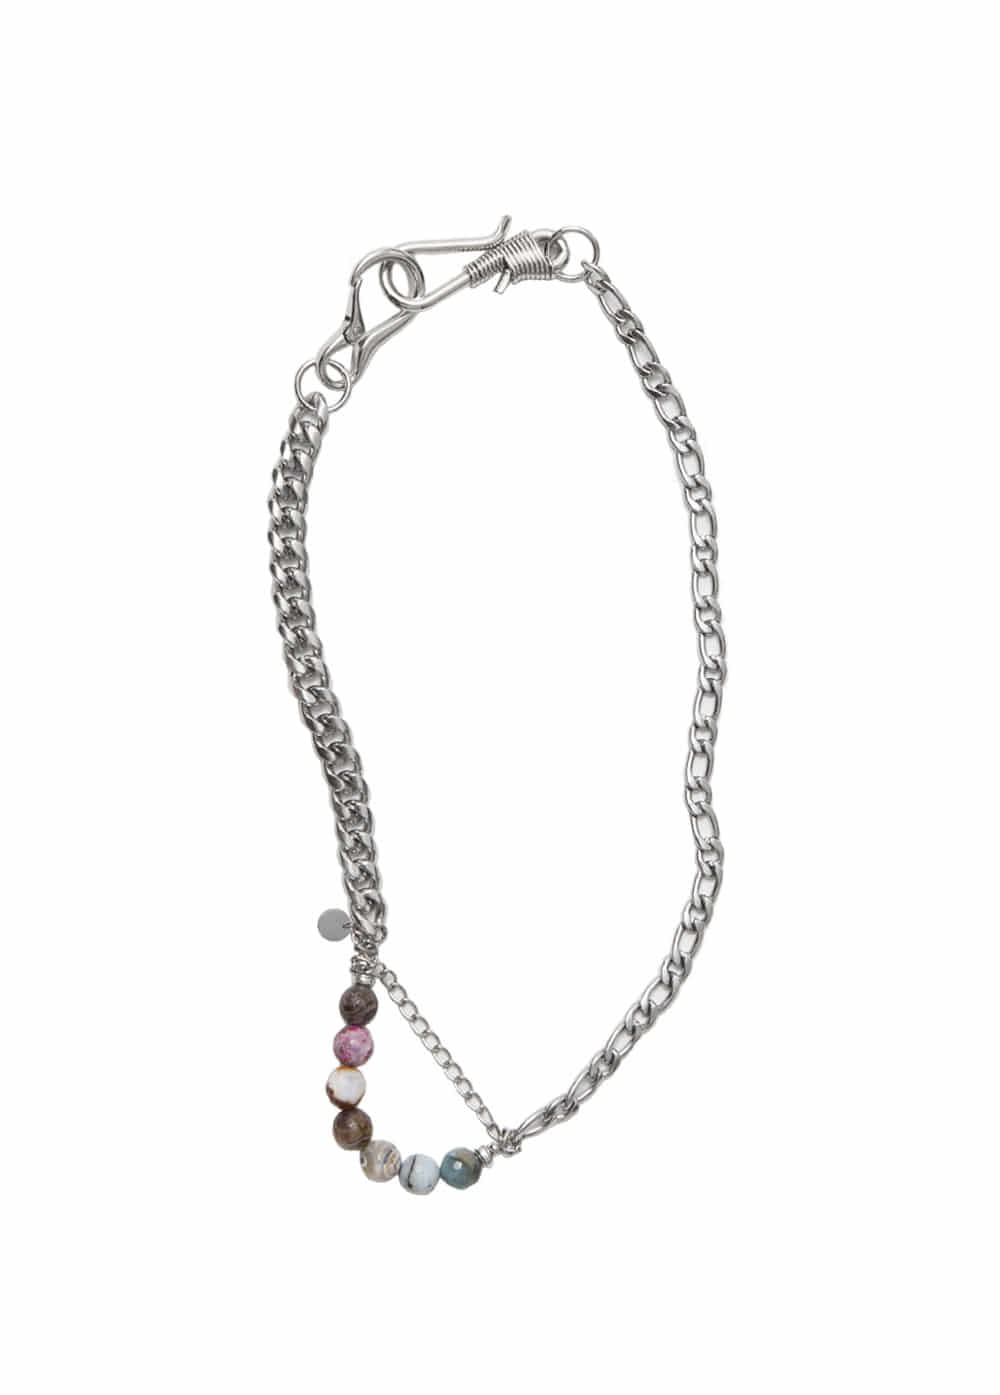 LIFUL 2WAY CHAIN NECKLACE silver